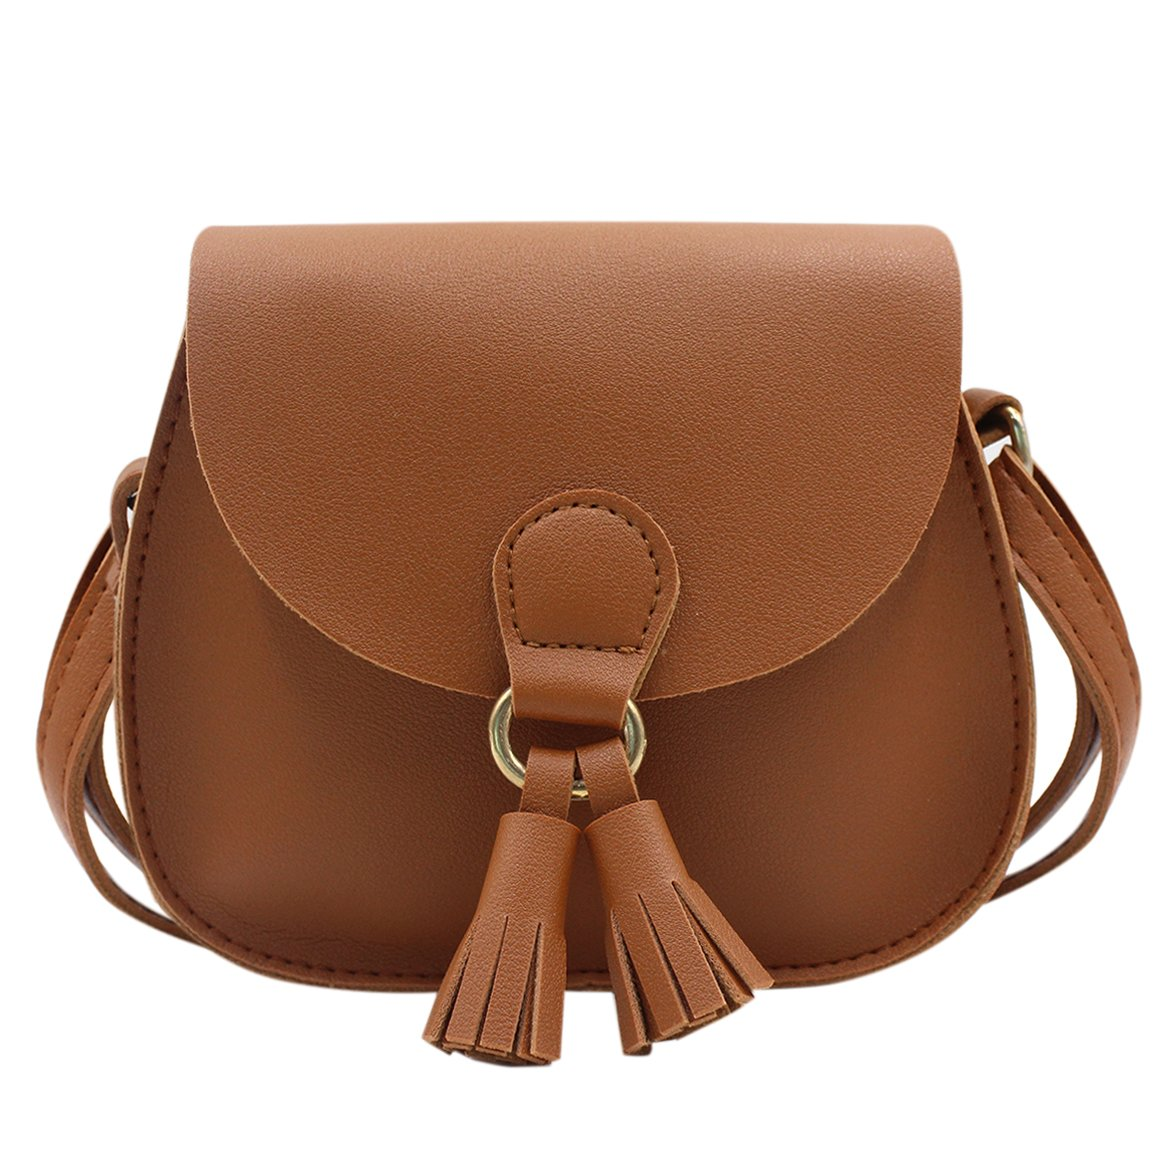 Amamcy PU Leather Shoulder Bag Coin Purse with Tassel Mini Crossbody Satchel Handbags for Kids Girls and Woman